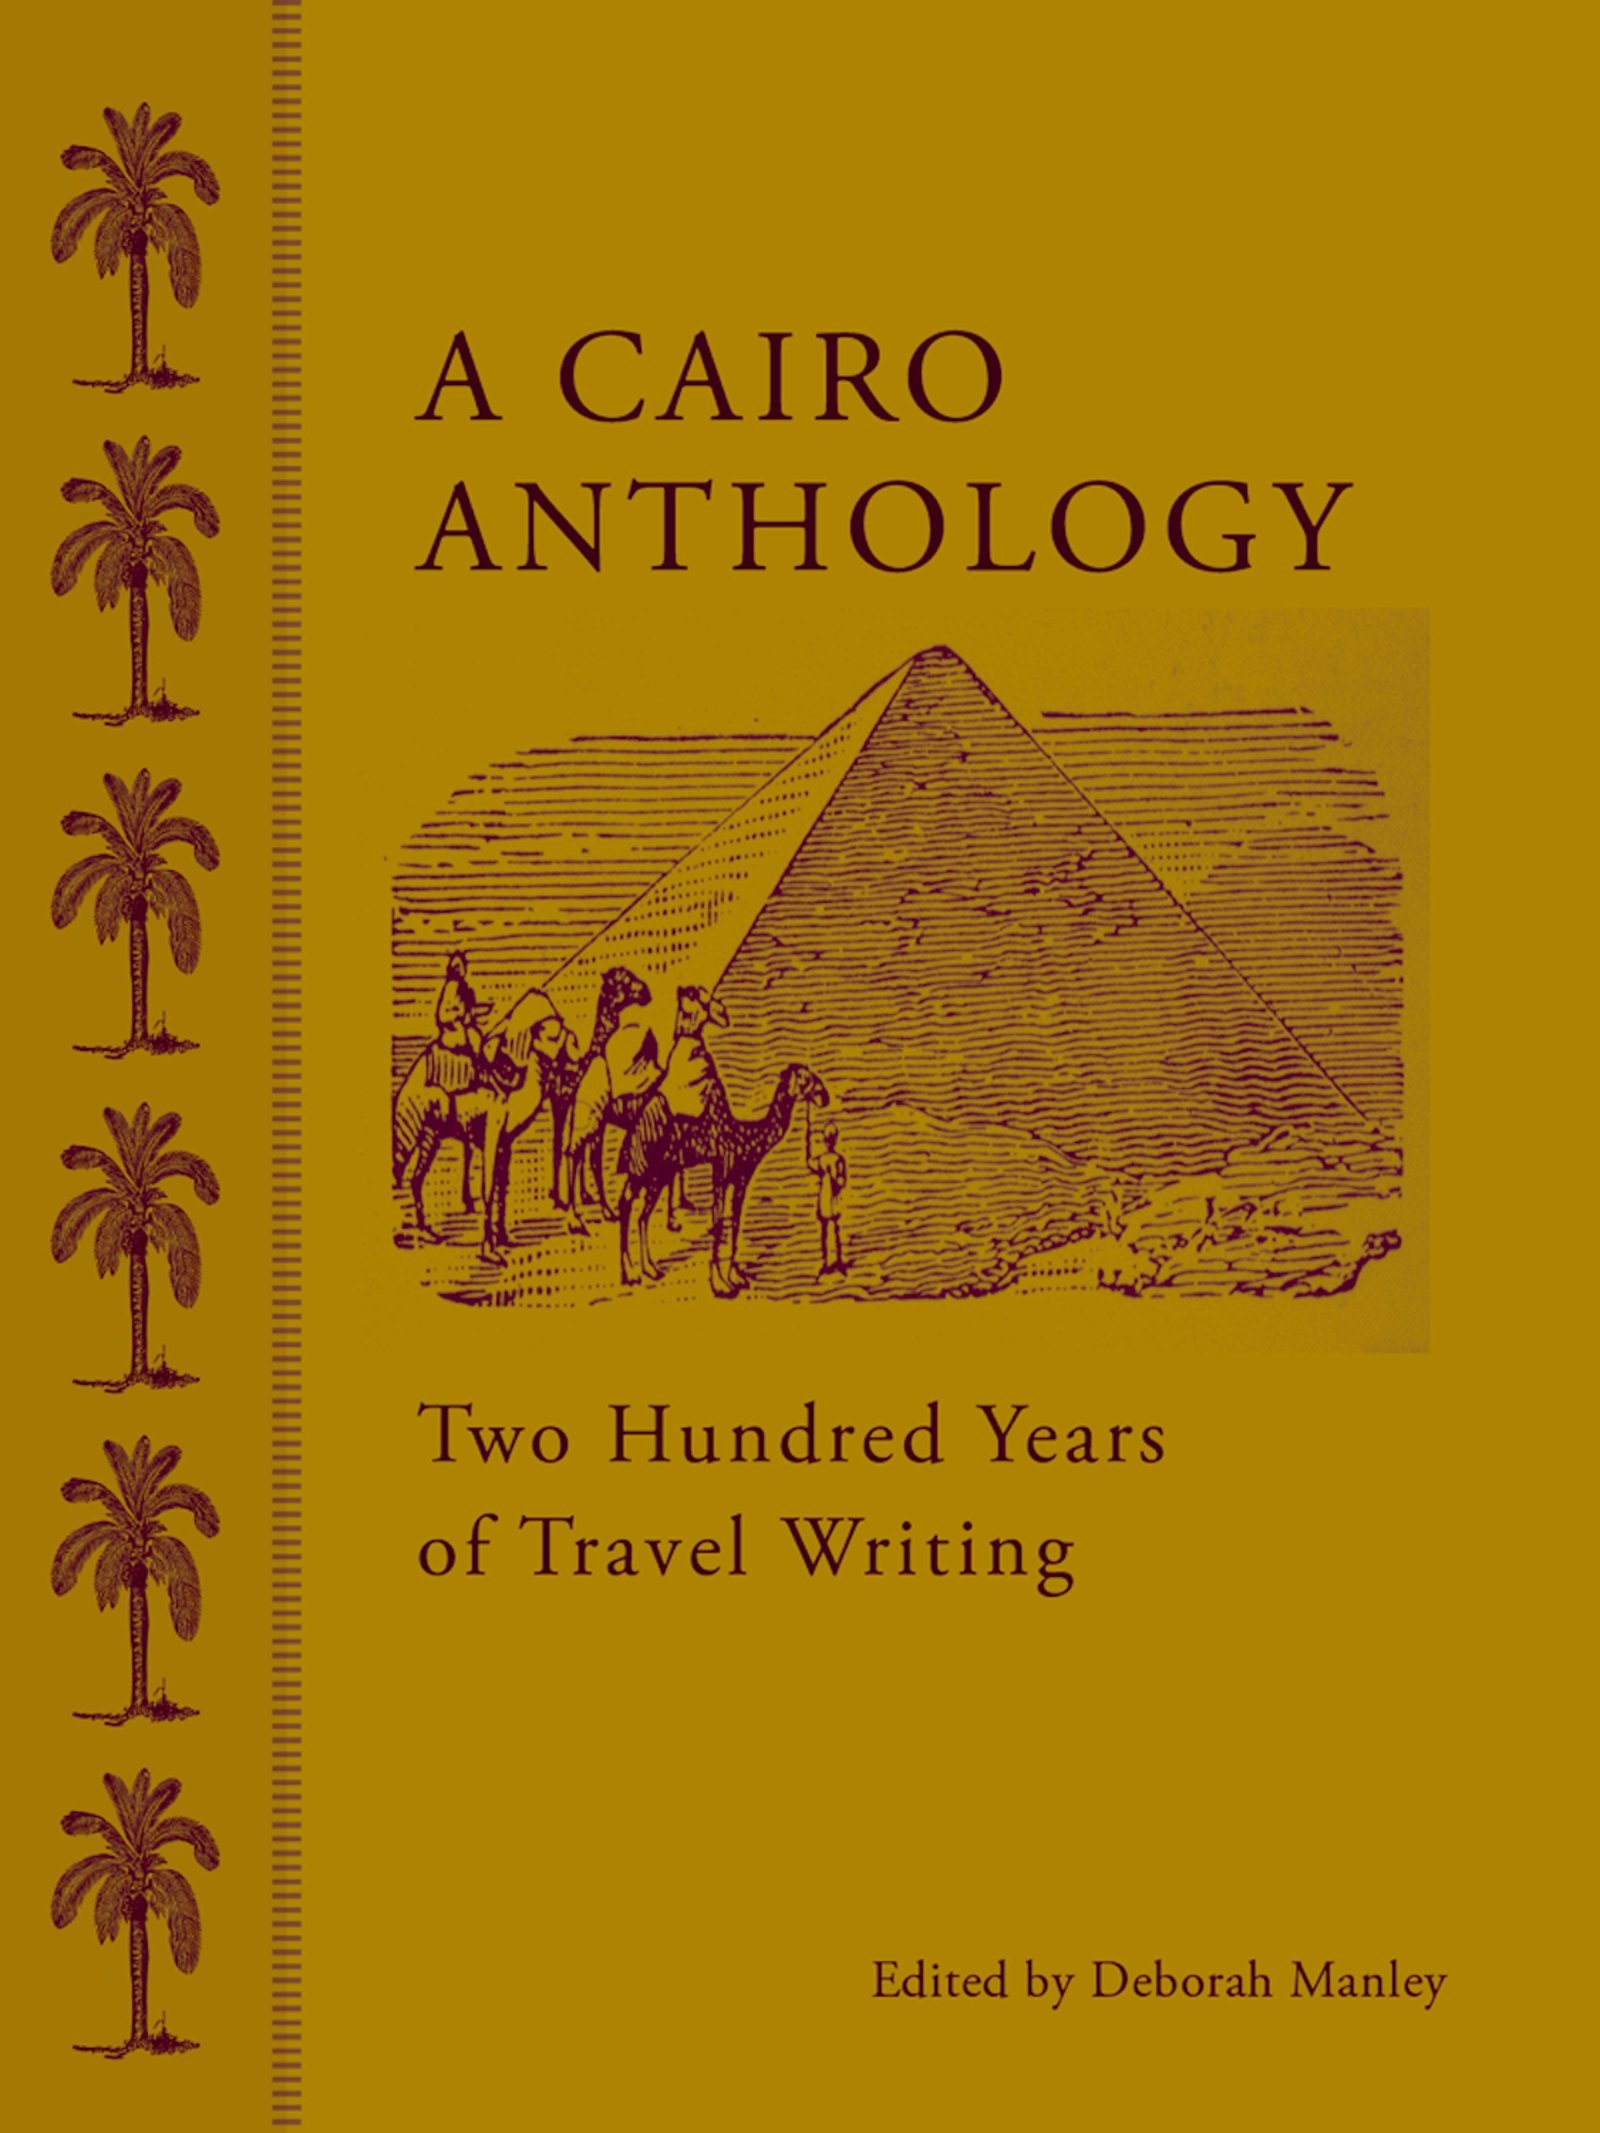 A Cairo Anthology: Two Hundred Years of Travel Writing pdf